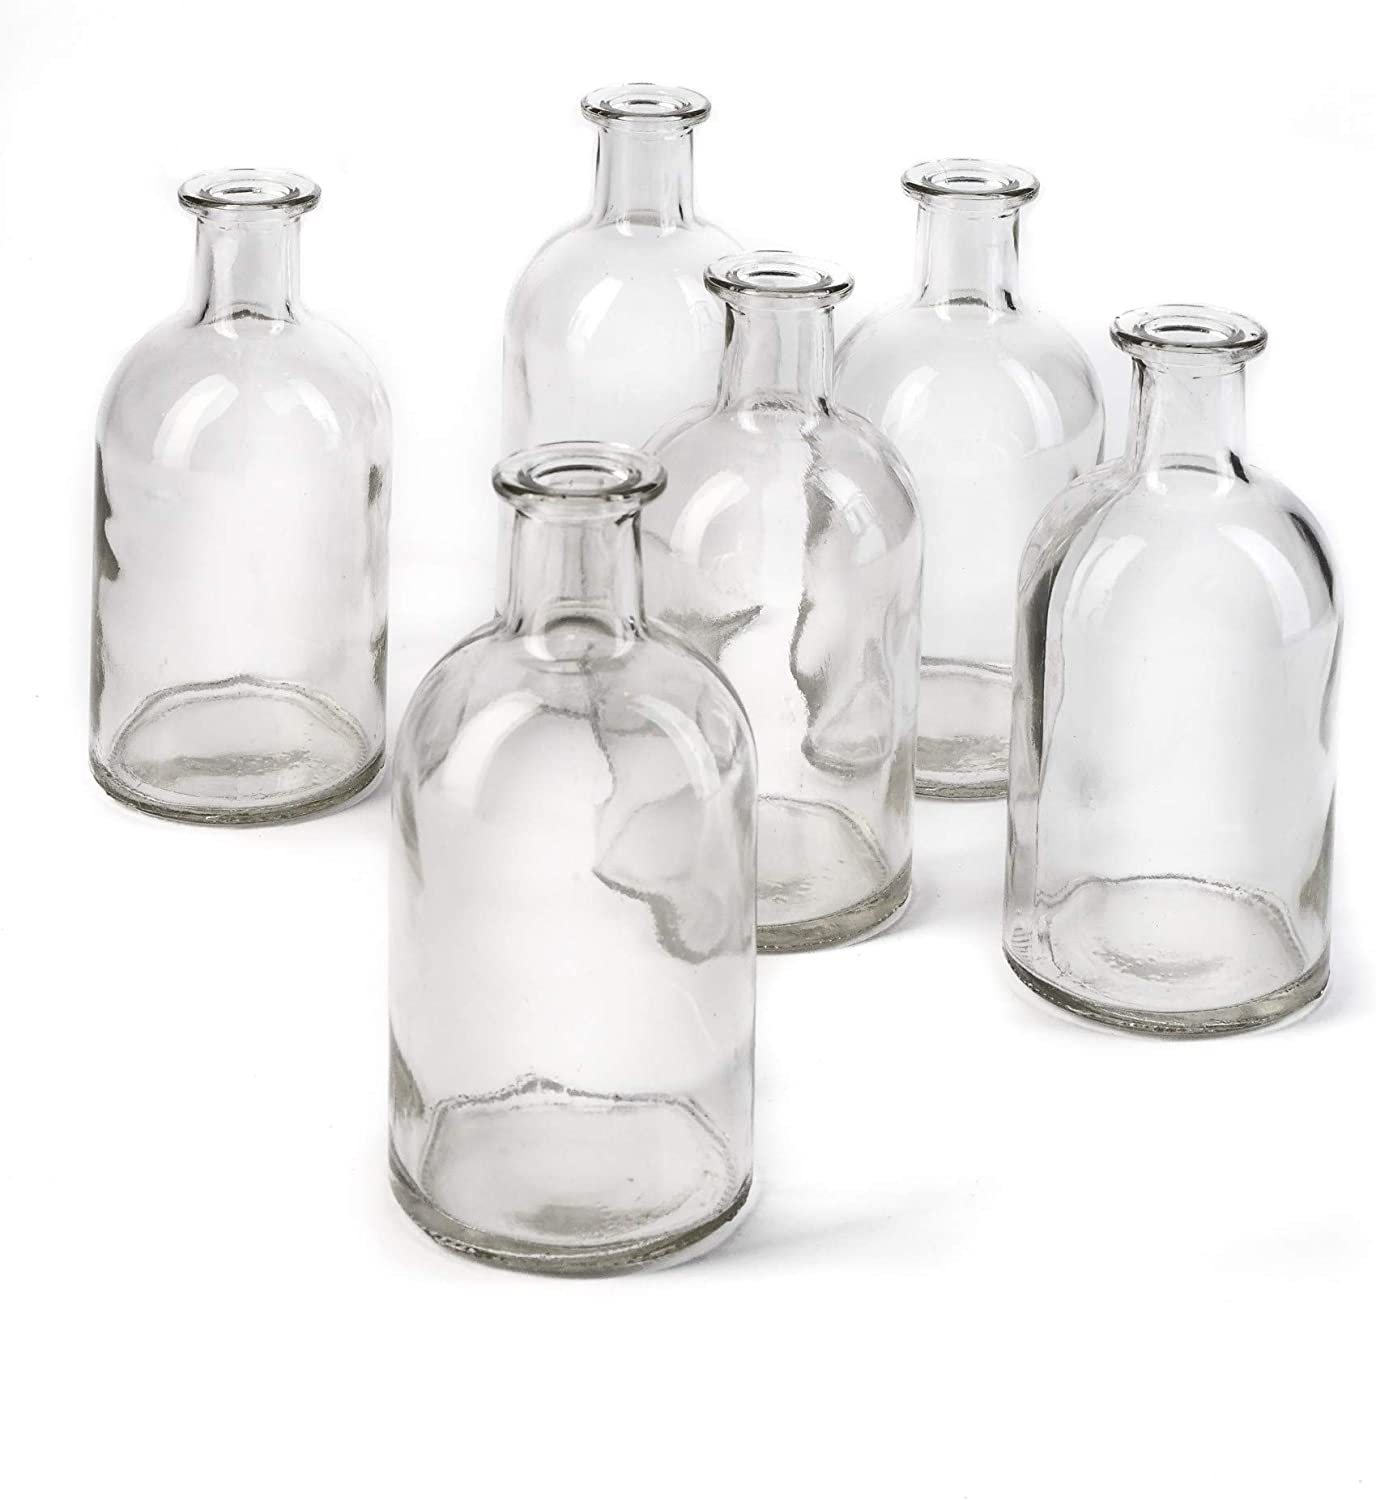 Serene Spaces Living Bud Vases, Apothecary Jars, Decorative Glass Bottles, Centerpiece for Wedding Reception, Mini Flower Vases, Small Medicine Bottles for Home Decor (Clear, Set of 6)